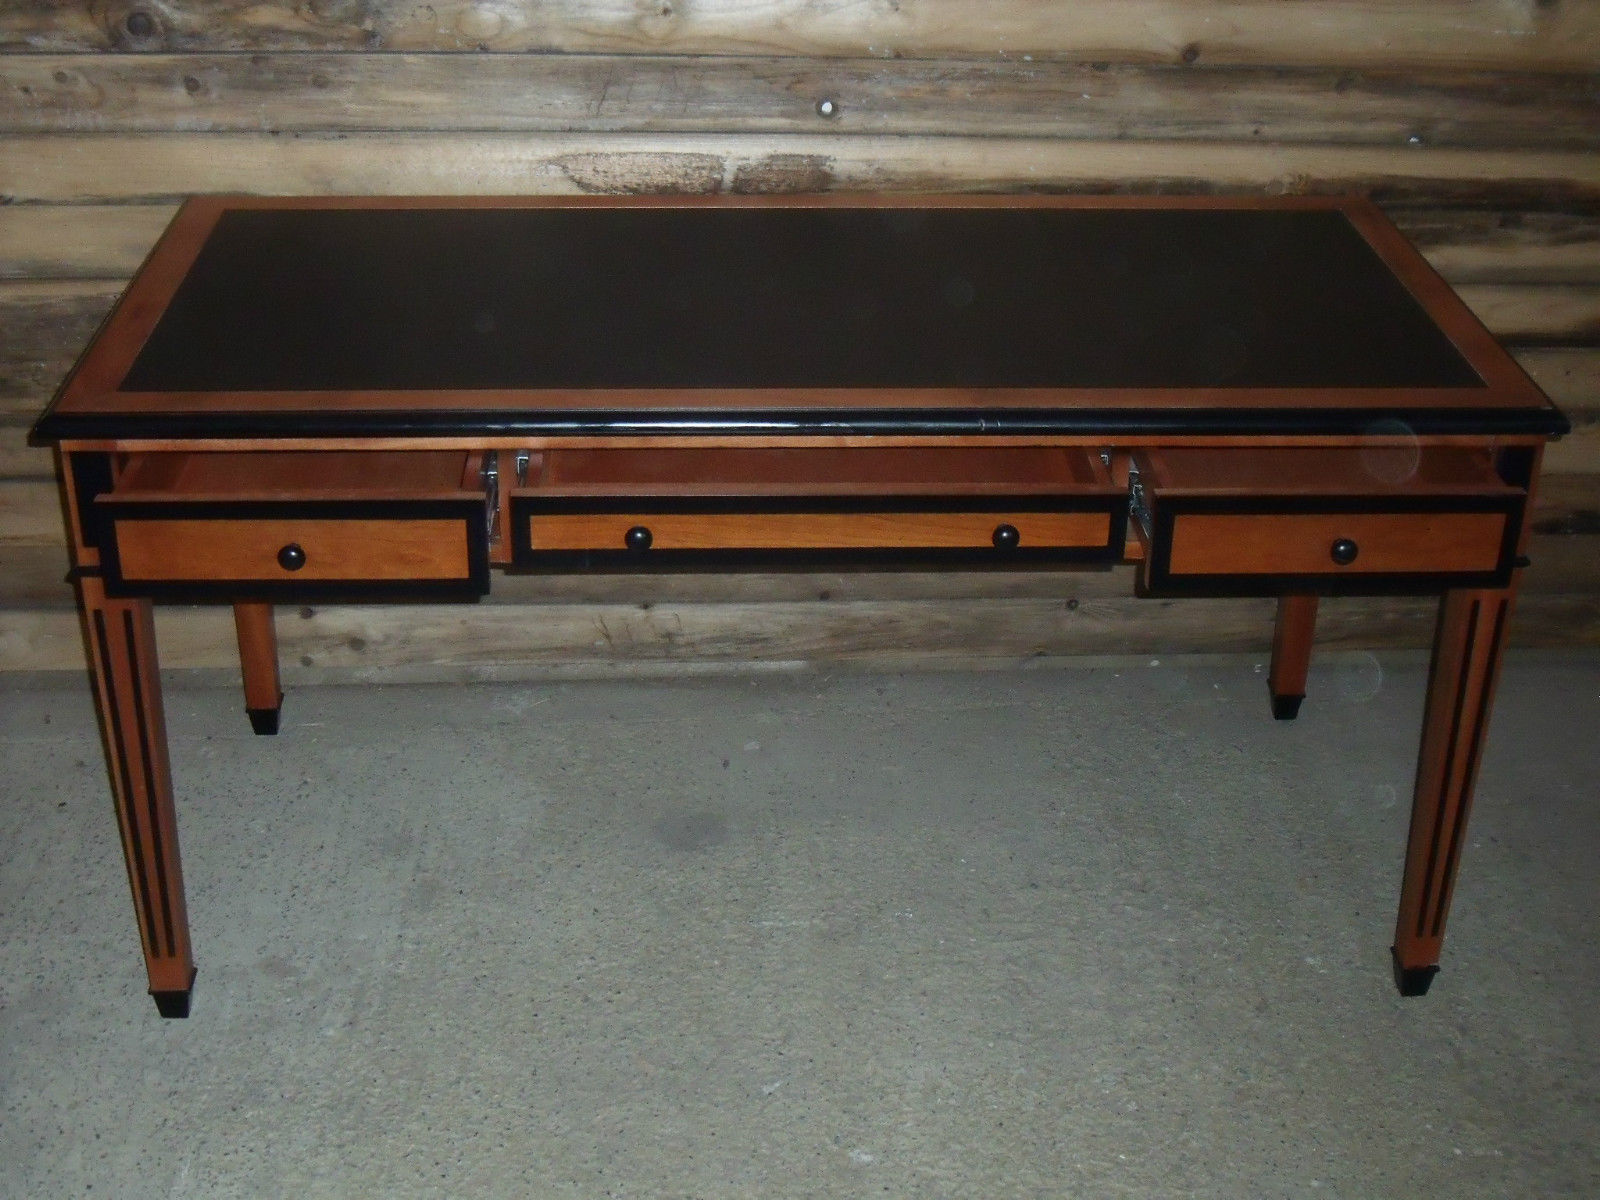 Art Deco Style Cherry Bureau Plat Writing Table Desk with Black